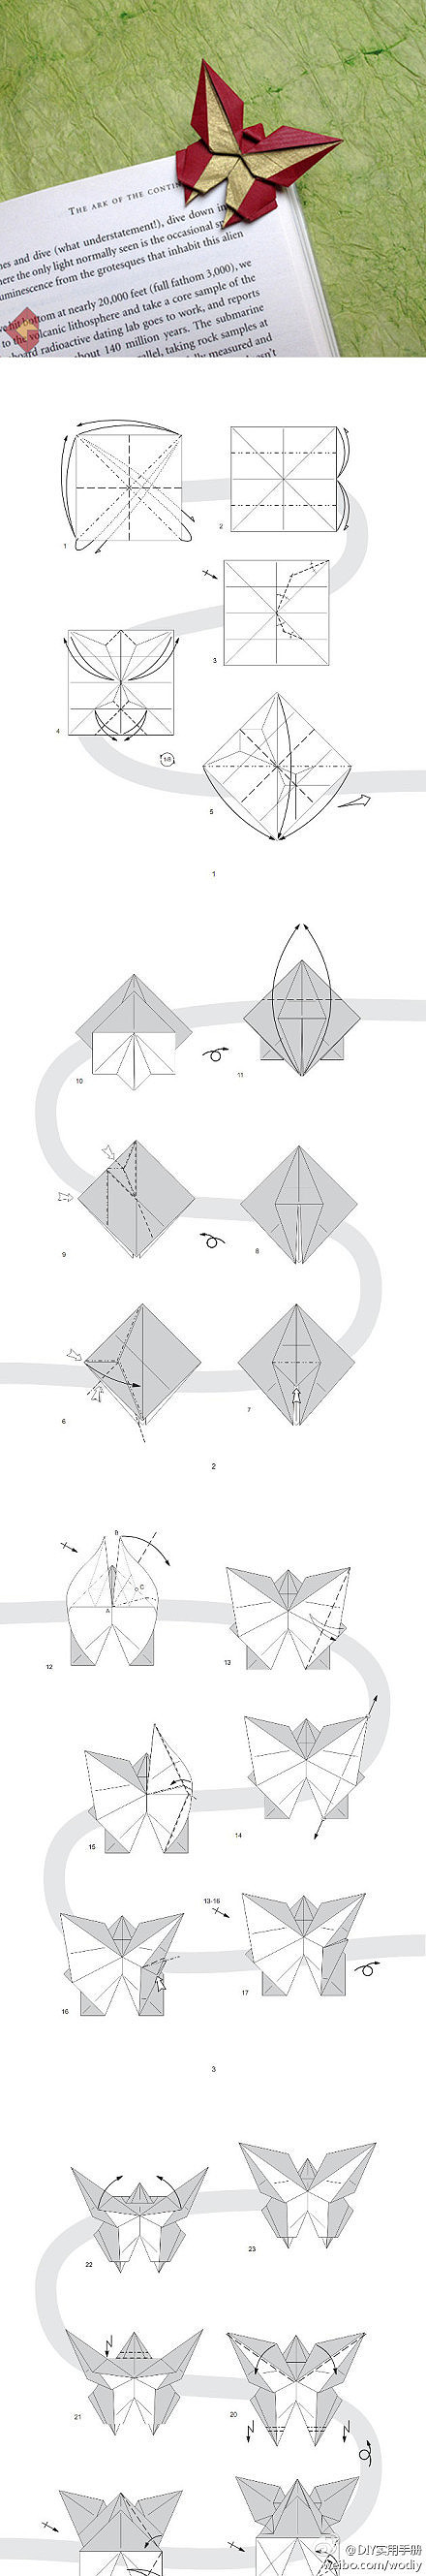 Easy Origami Butterfly Bookmark Corner - How to make an Origami ... | 2658x440